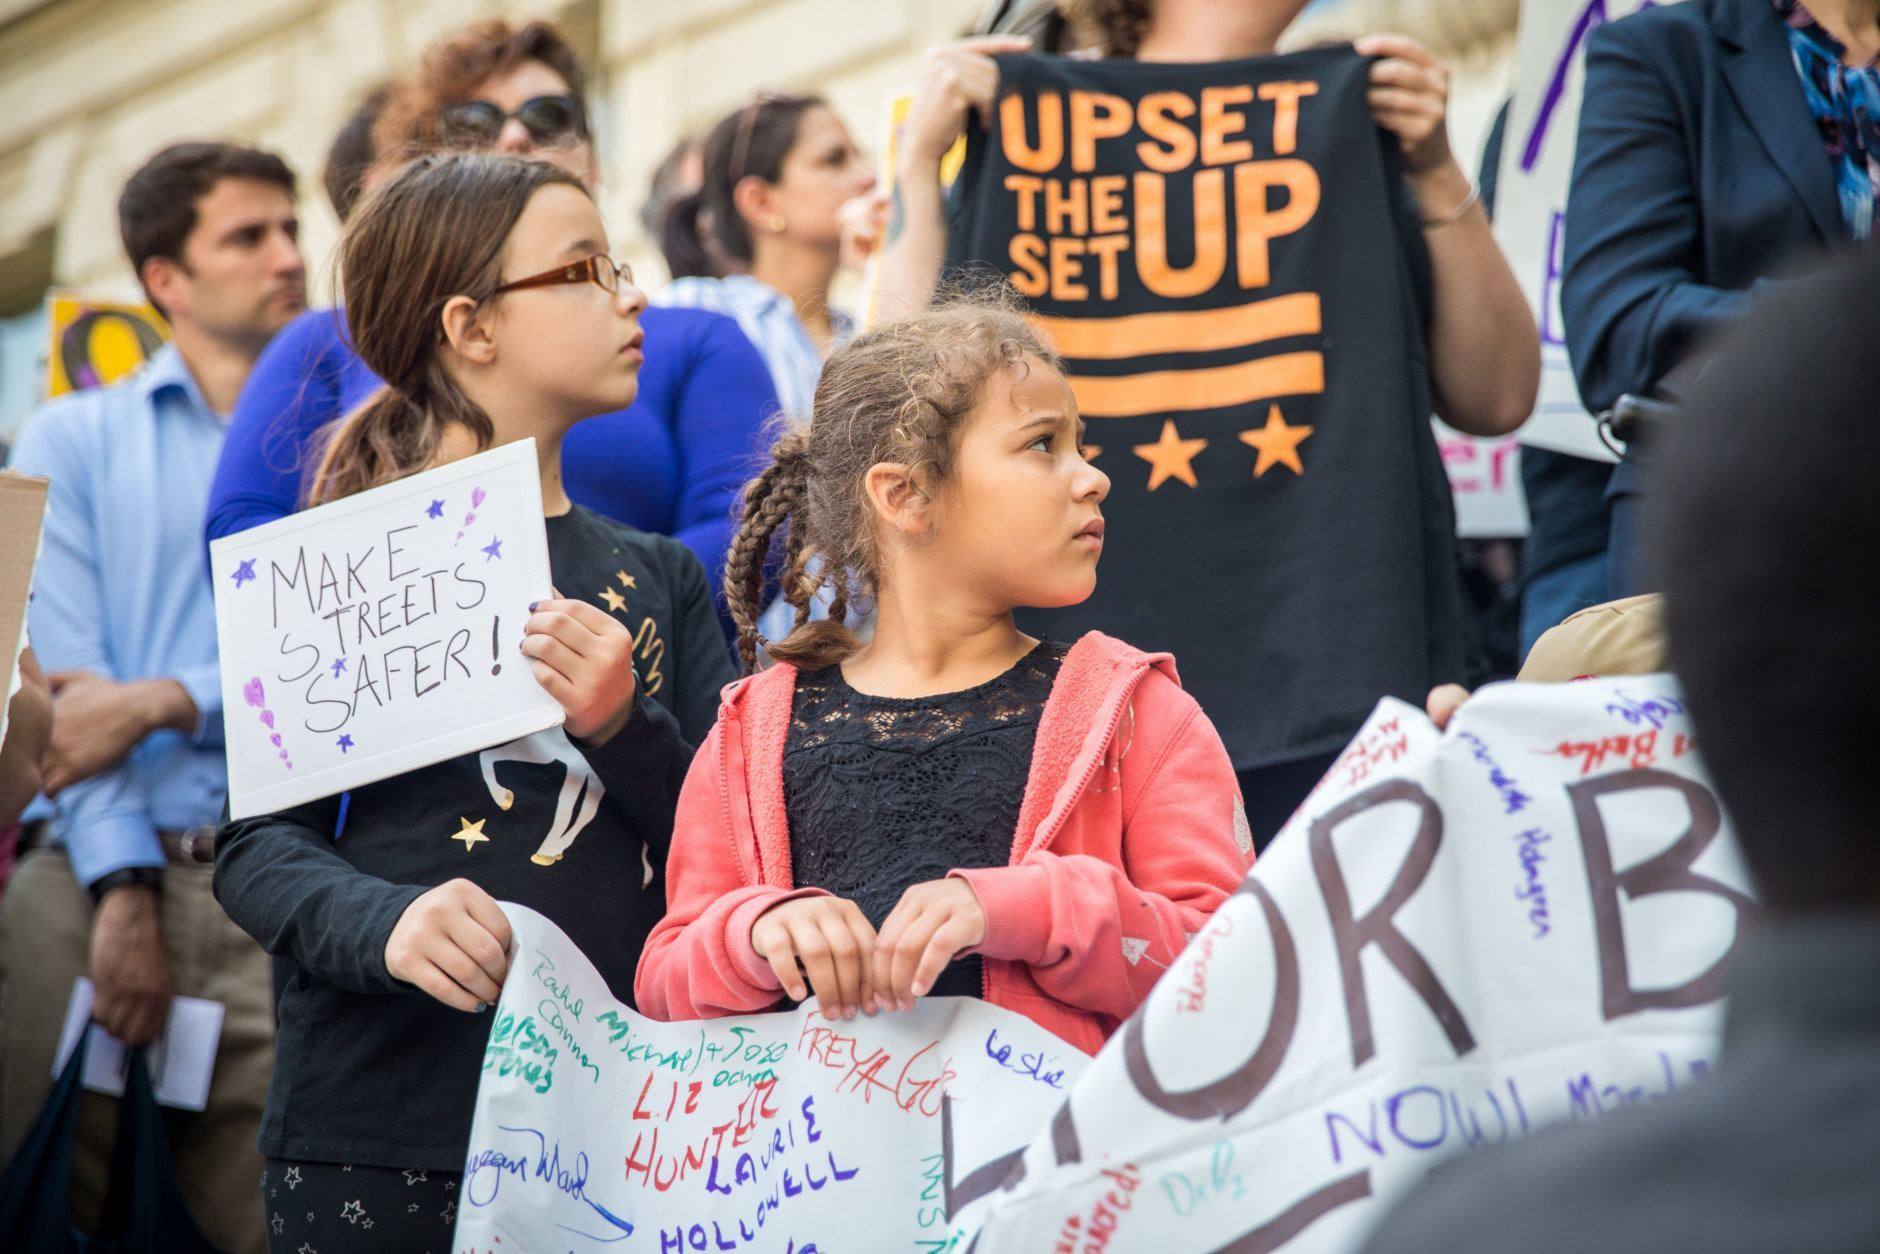 Demonstrators in front of the Wilson Building on Friday call for better infrastructure as one way to protect road users. (Courtesy Aimee Custis/Aimee Custis Photography)